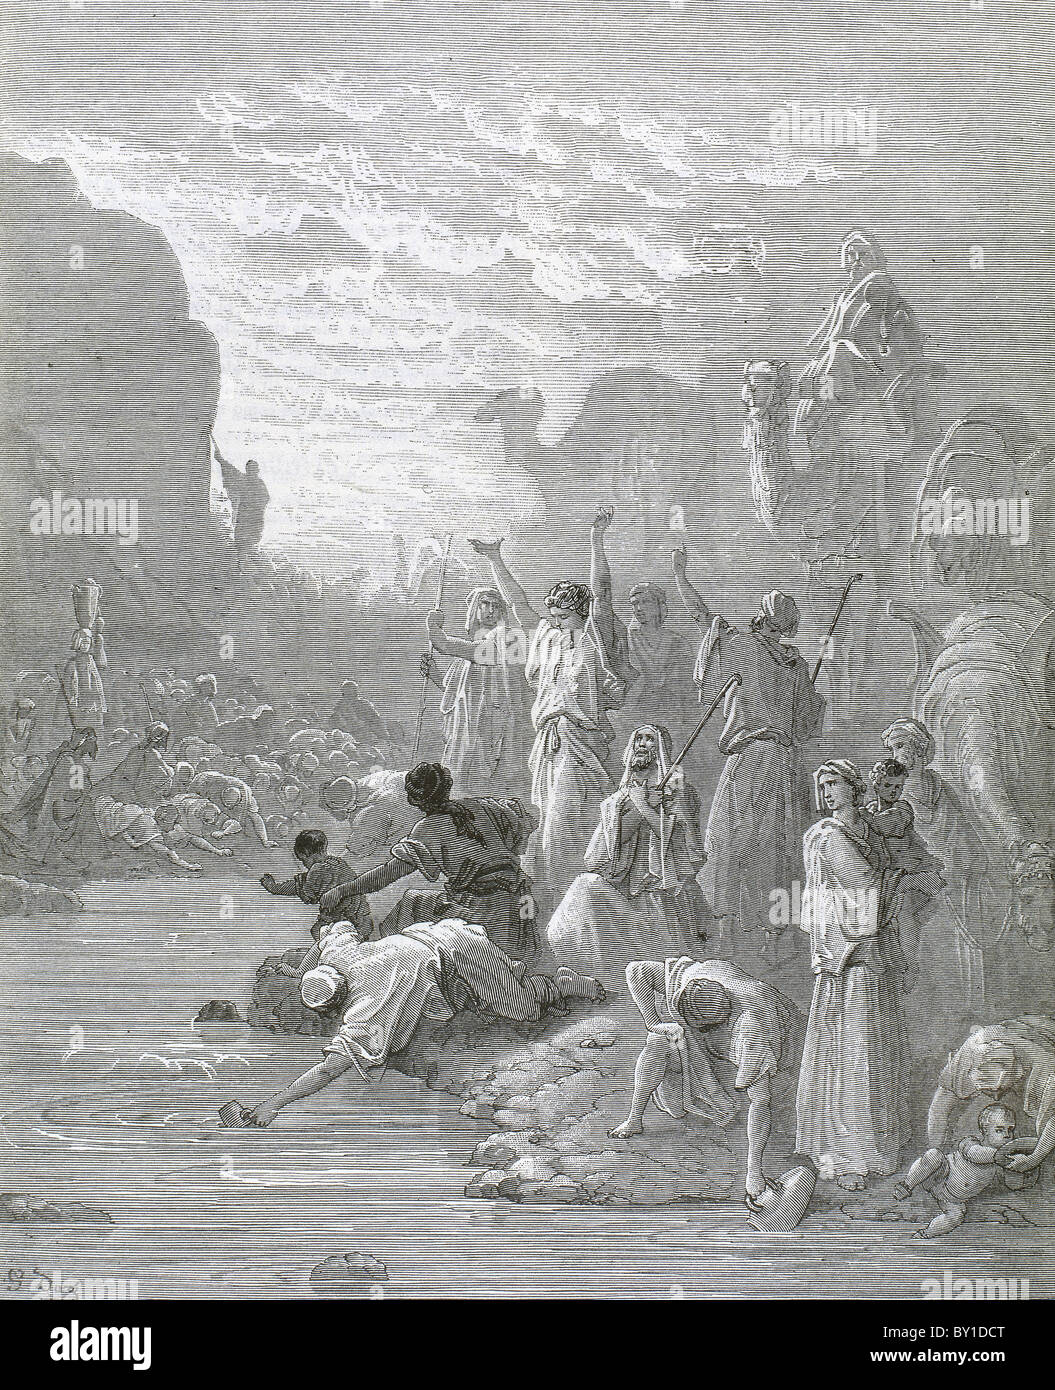 Moses brings forth water from the rock. Book of Exodus. G. Dore engraving. - Stock Image